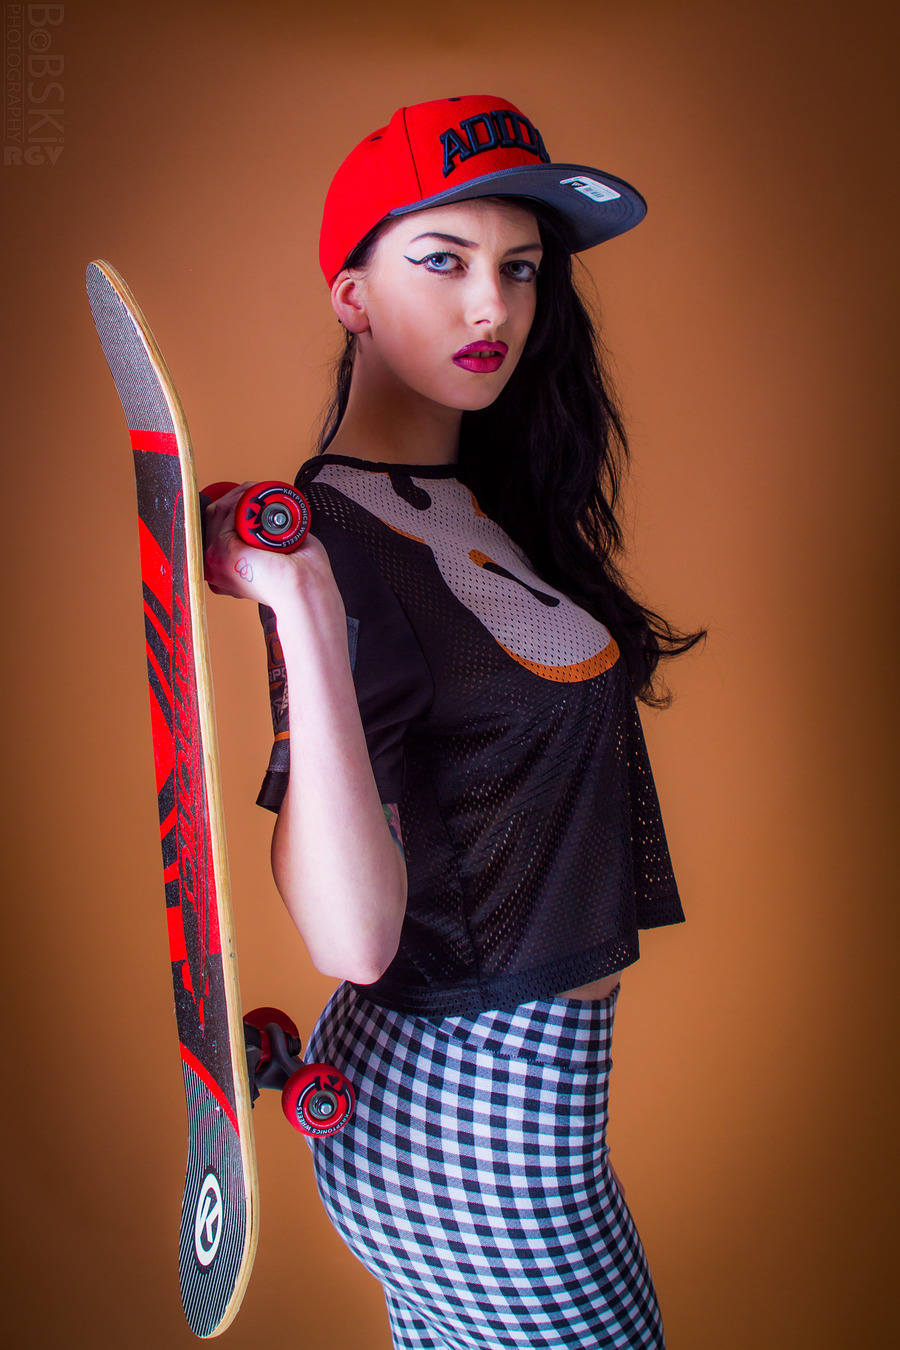 SK8TR BABE..... / Photography by BobskiRGV, Post processing by BobskiRGV / Uploaded 10th January 2015 @ 01:28 AM